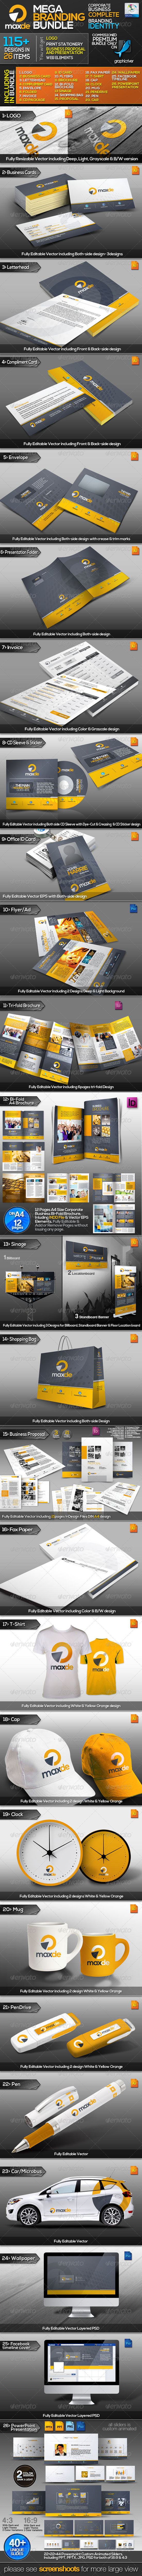 GraphicRiver Maxde Corporate Business ID Mega Branding Bundle 3135141